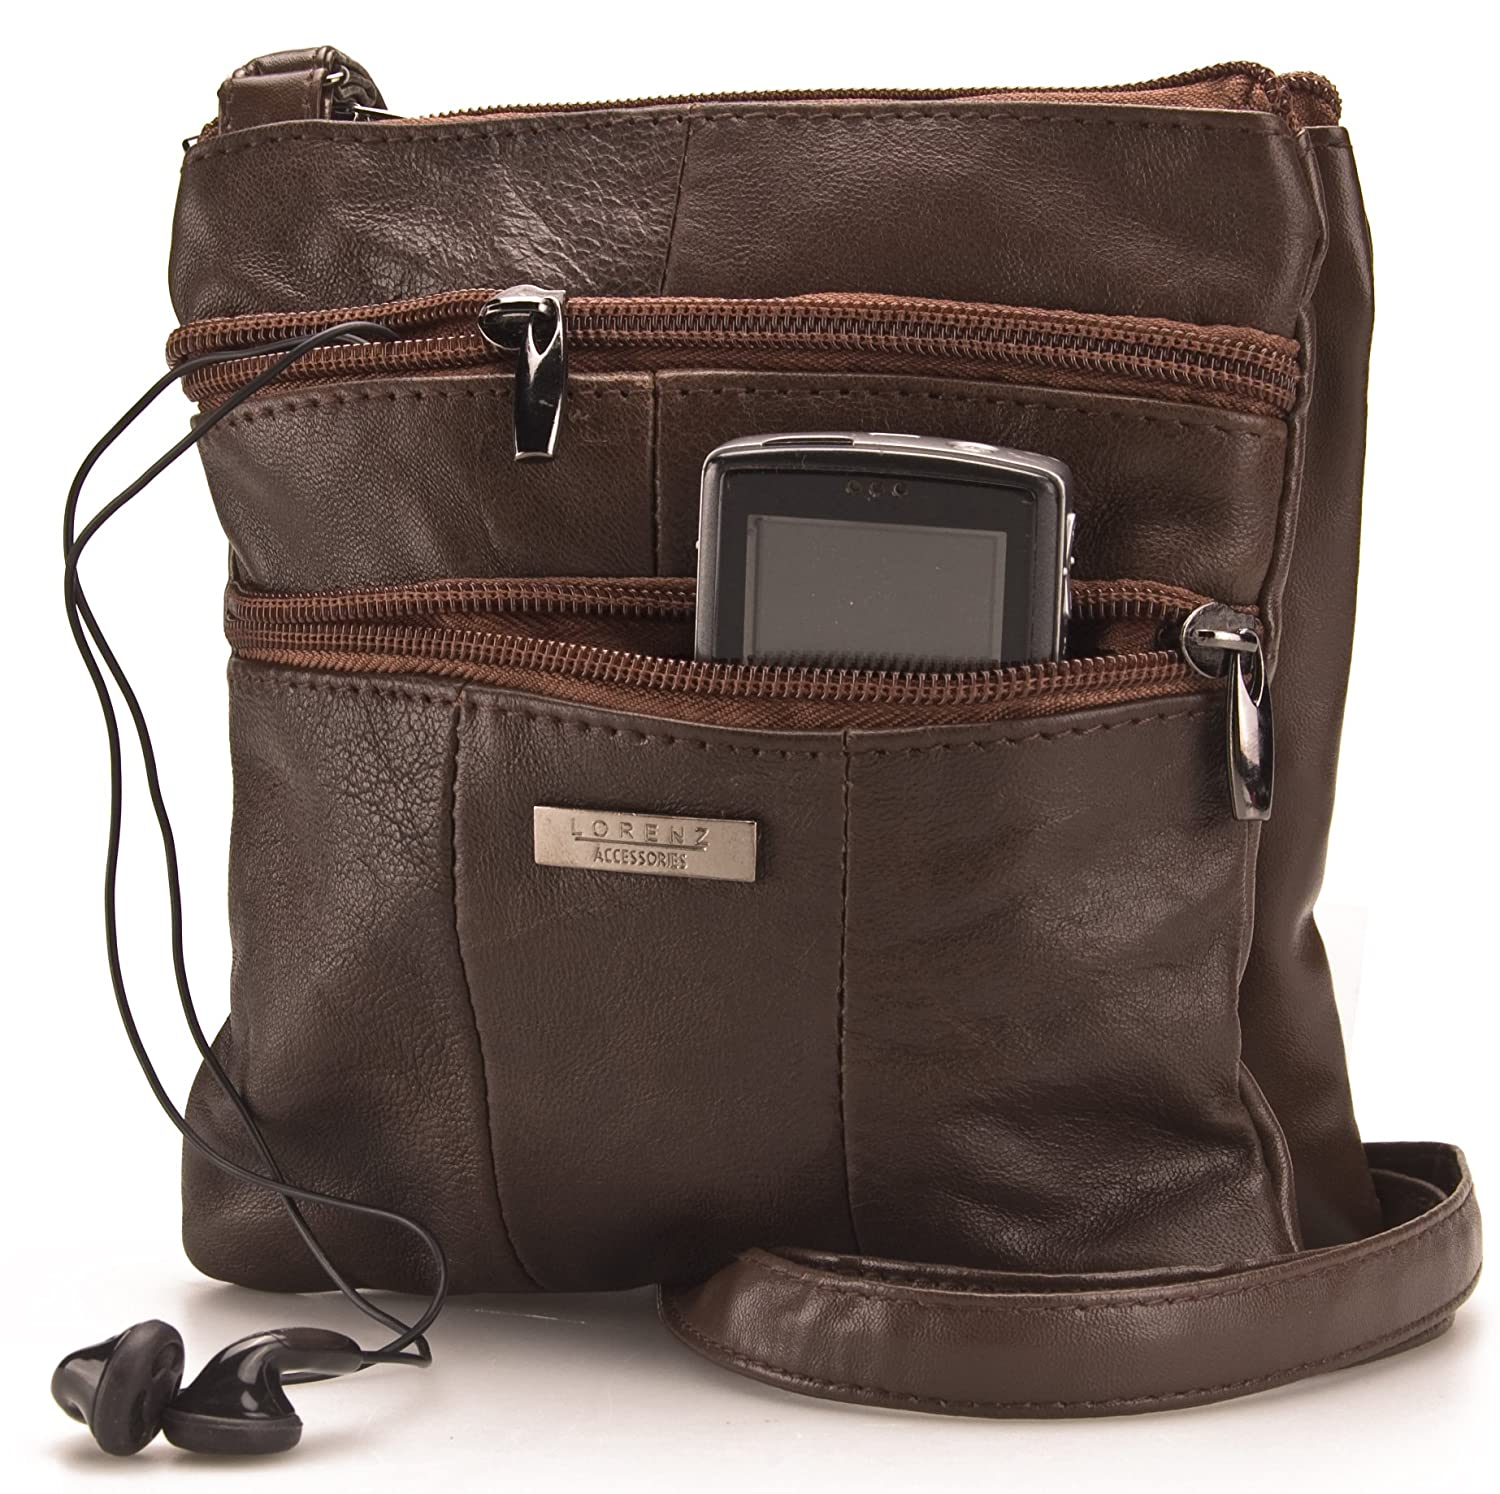 6c9047a219 Lorenz Ladies Small Genuine Soft Leather Cross Body   Shoulder Bag (1)    1941 - Chocolate  Amazon.co.uk  Luggage